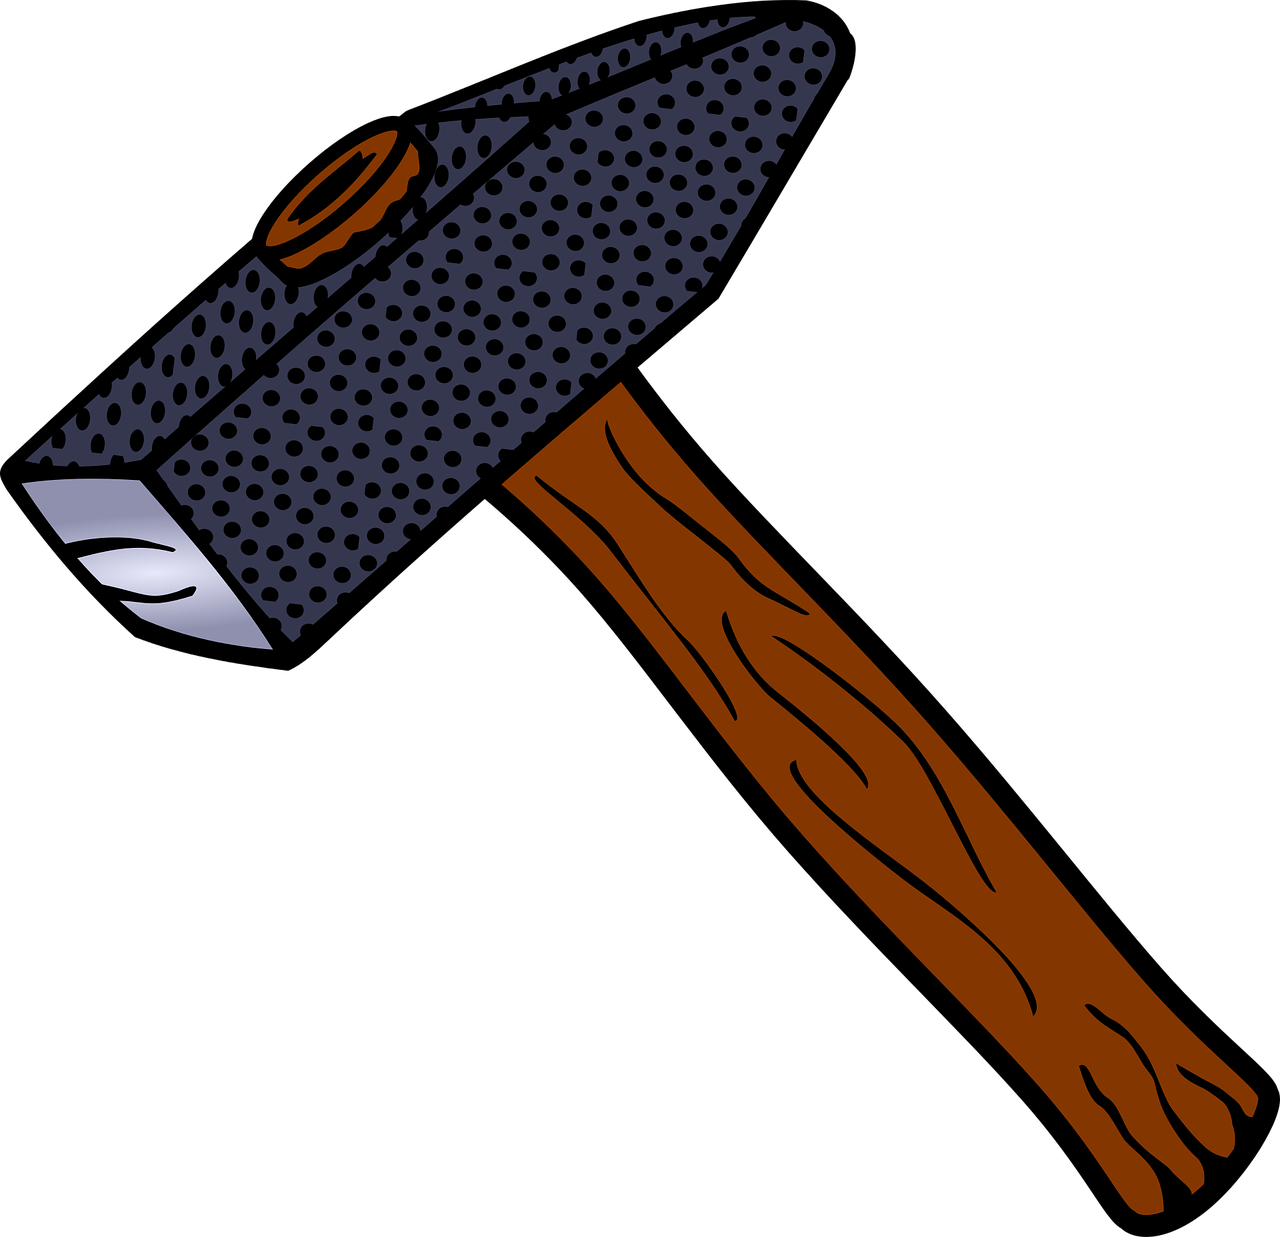 Clipart hammer old hammer. A gentle introduction to